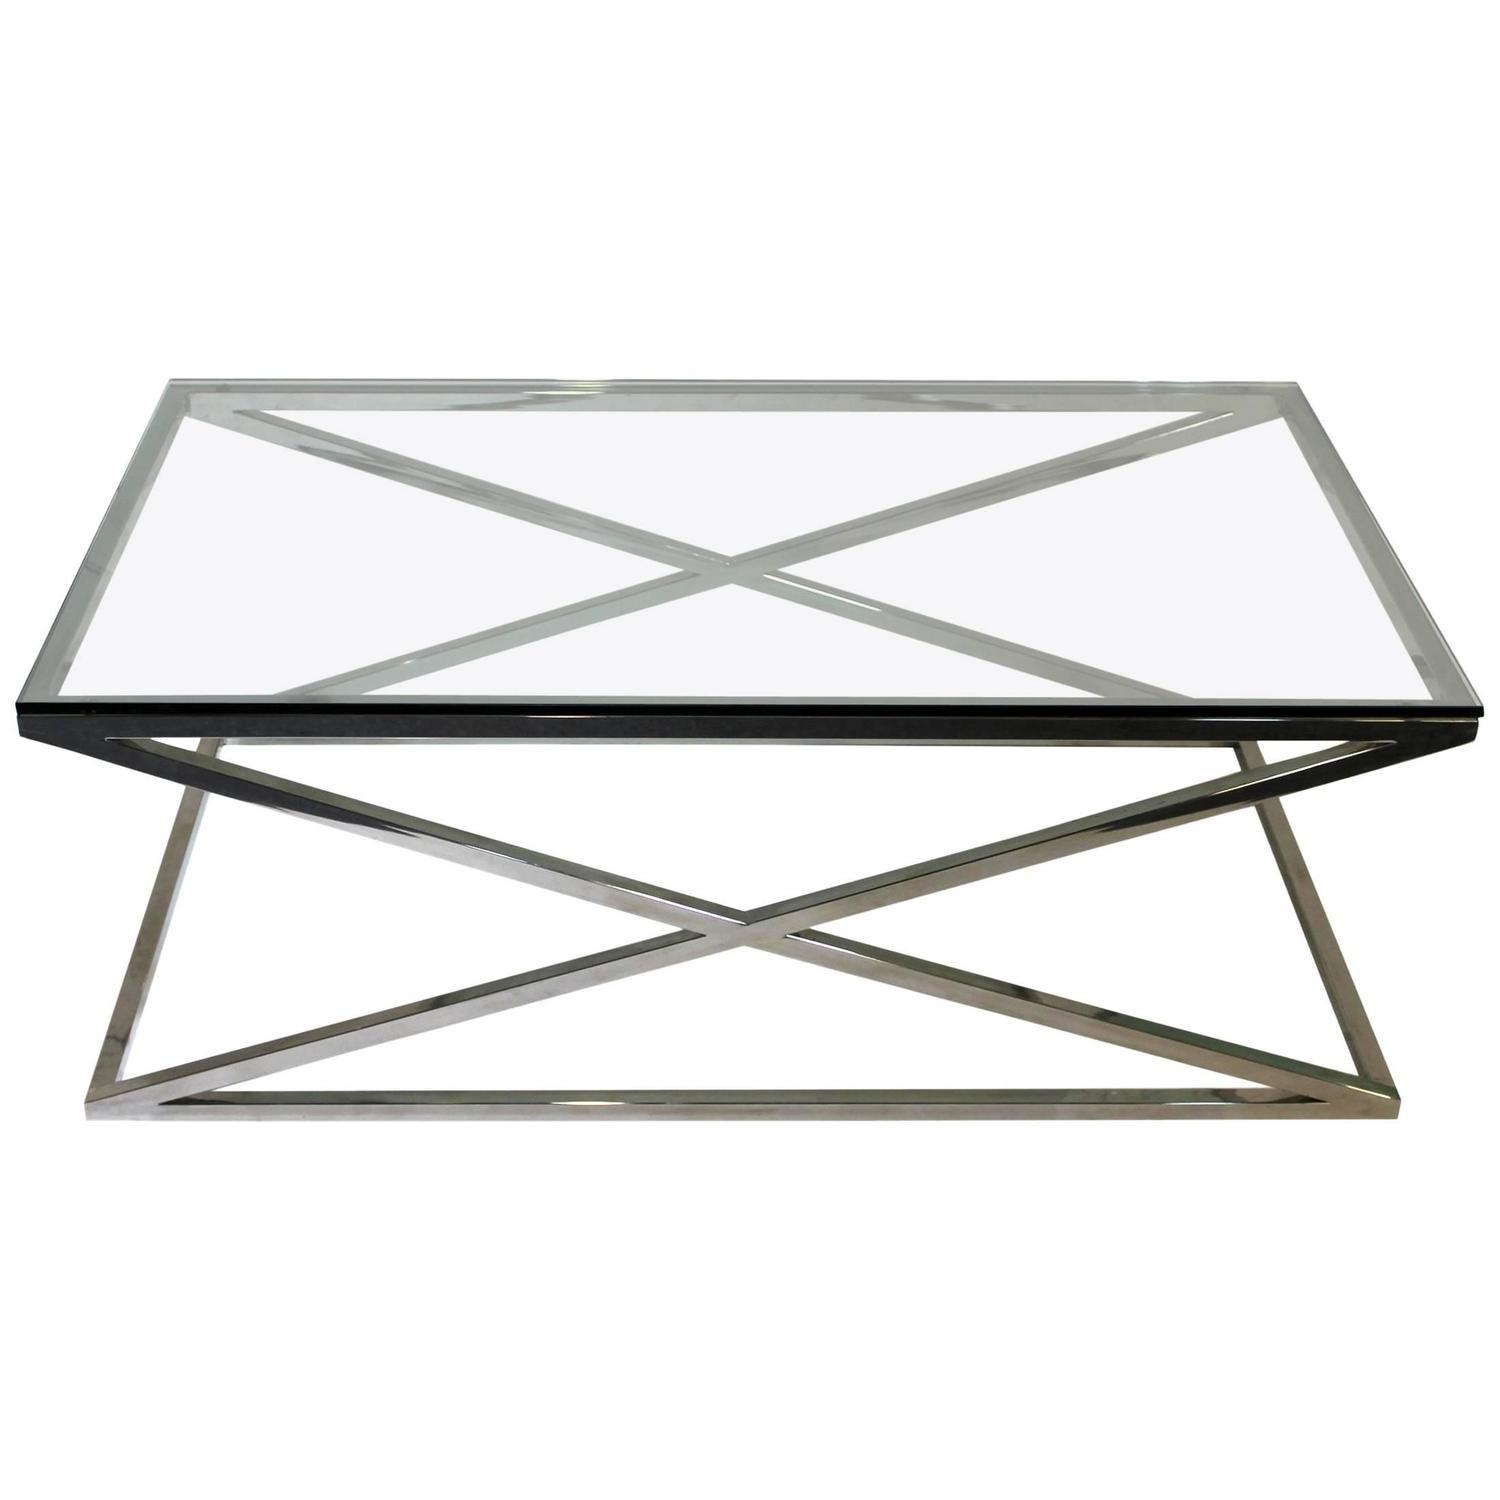 Mid century modern rectangular glass coffee table chrome x base for sale at 1stdibs Glass coffee table base